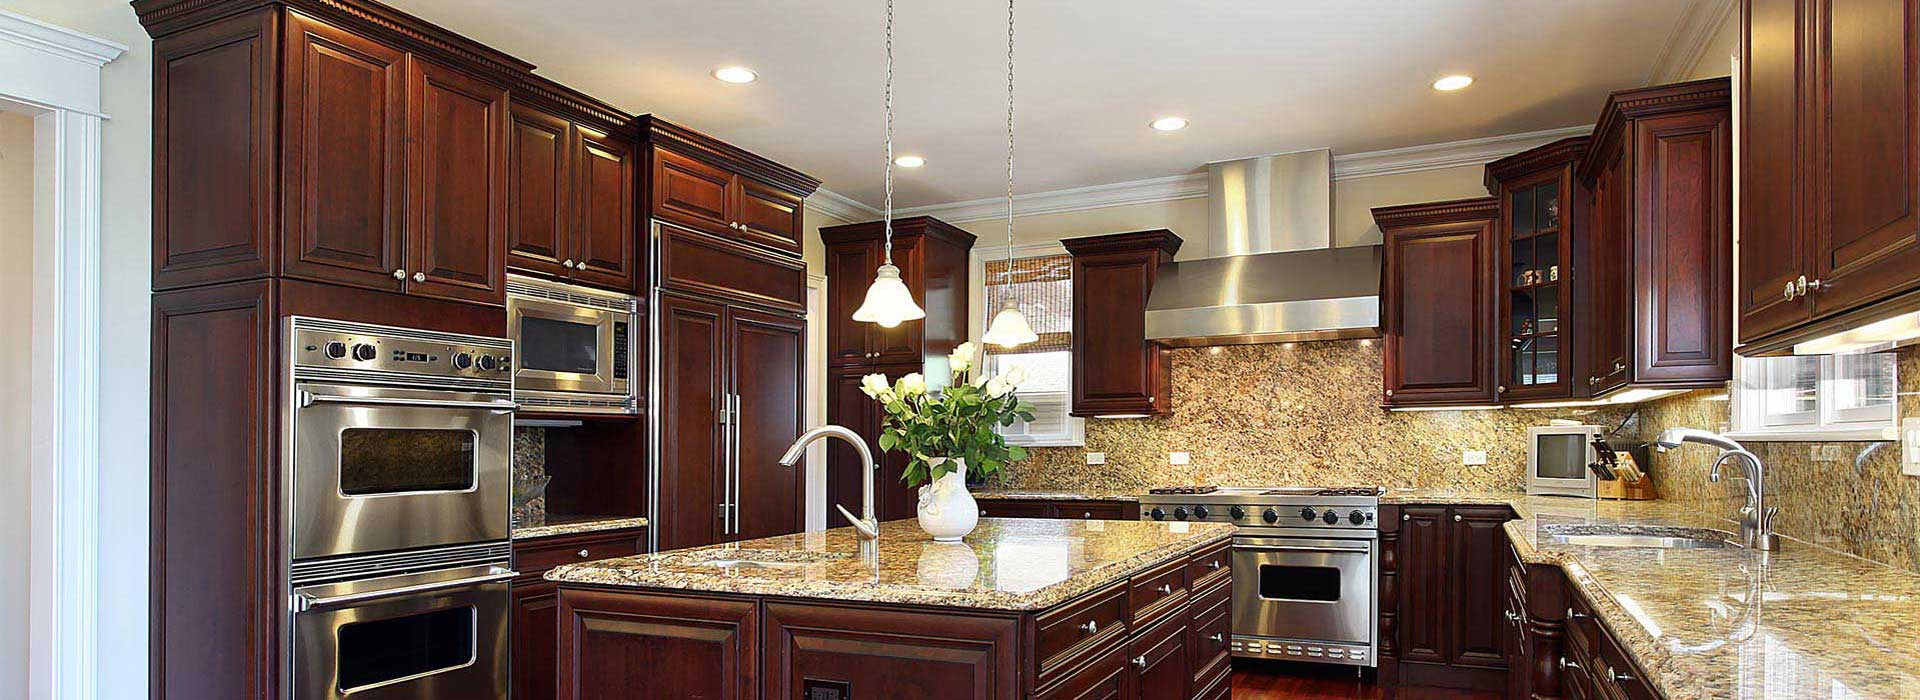 Kitchen Cabinet Refacing - New Look Kitchen Refacing NY